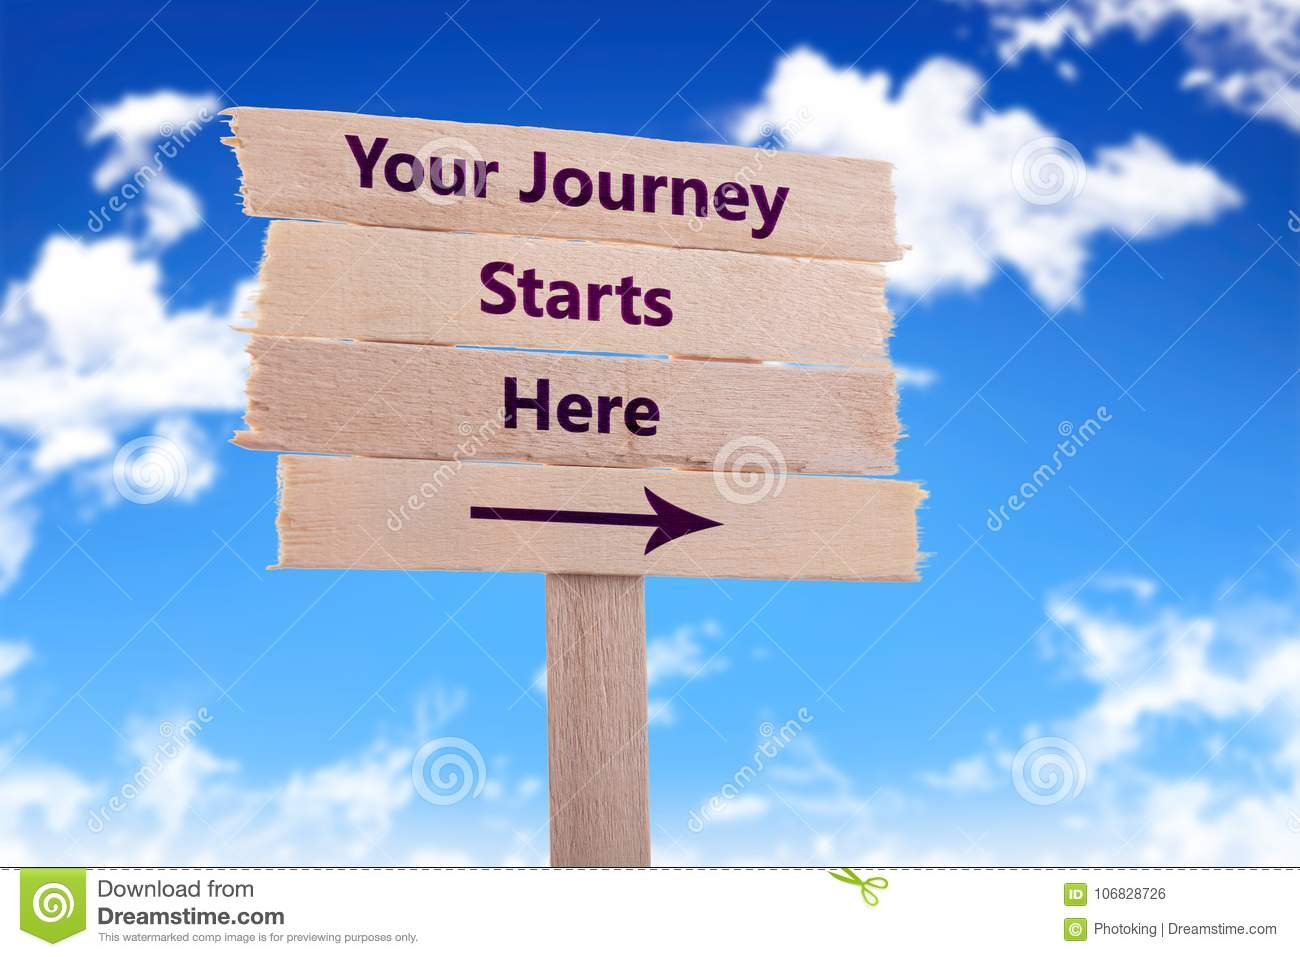 Your Journey Start Here Stock Photo. Image Of Guidance